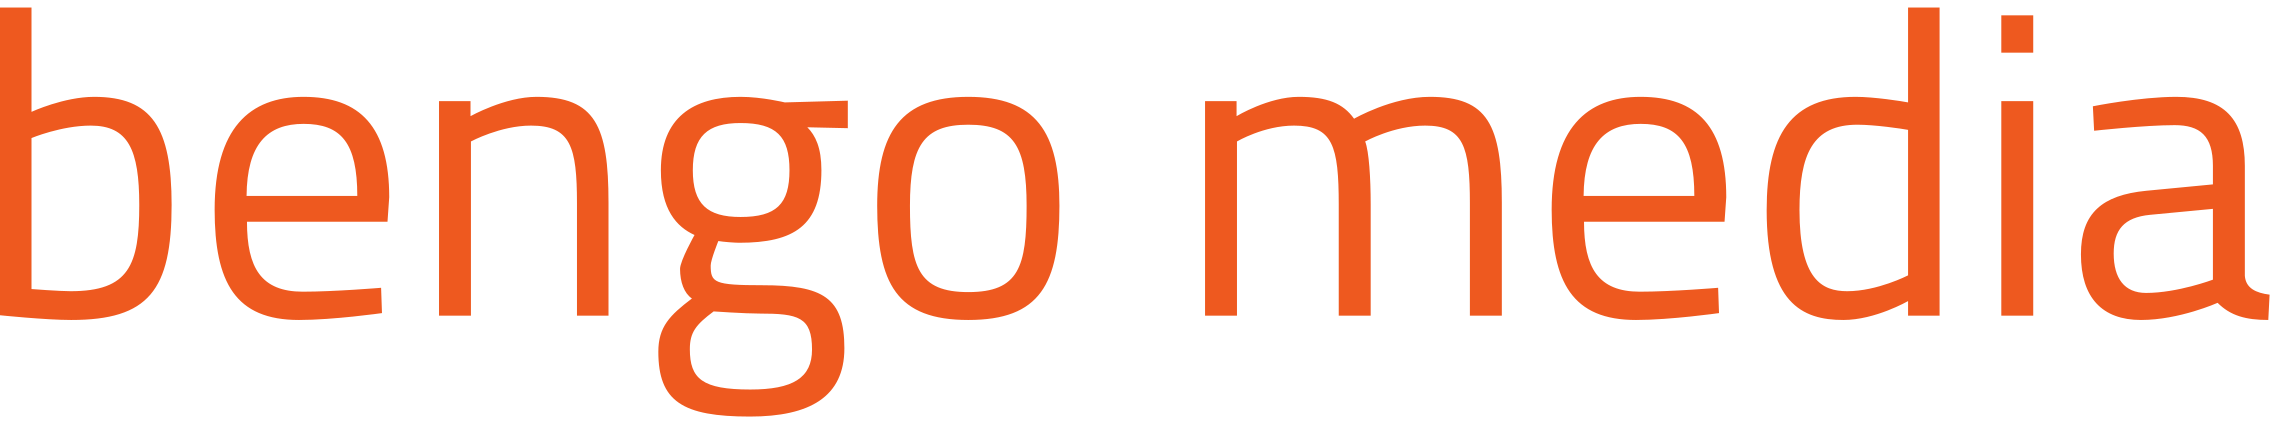 color_logo_transparent_background.png